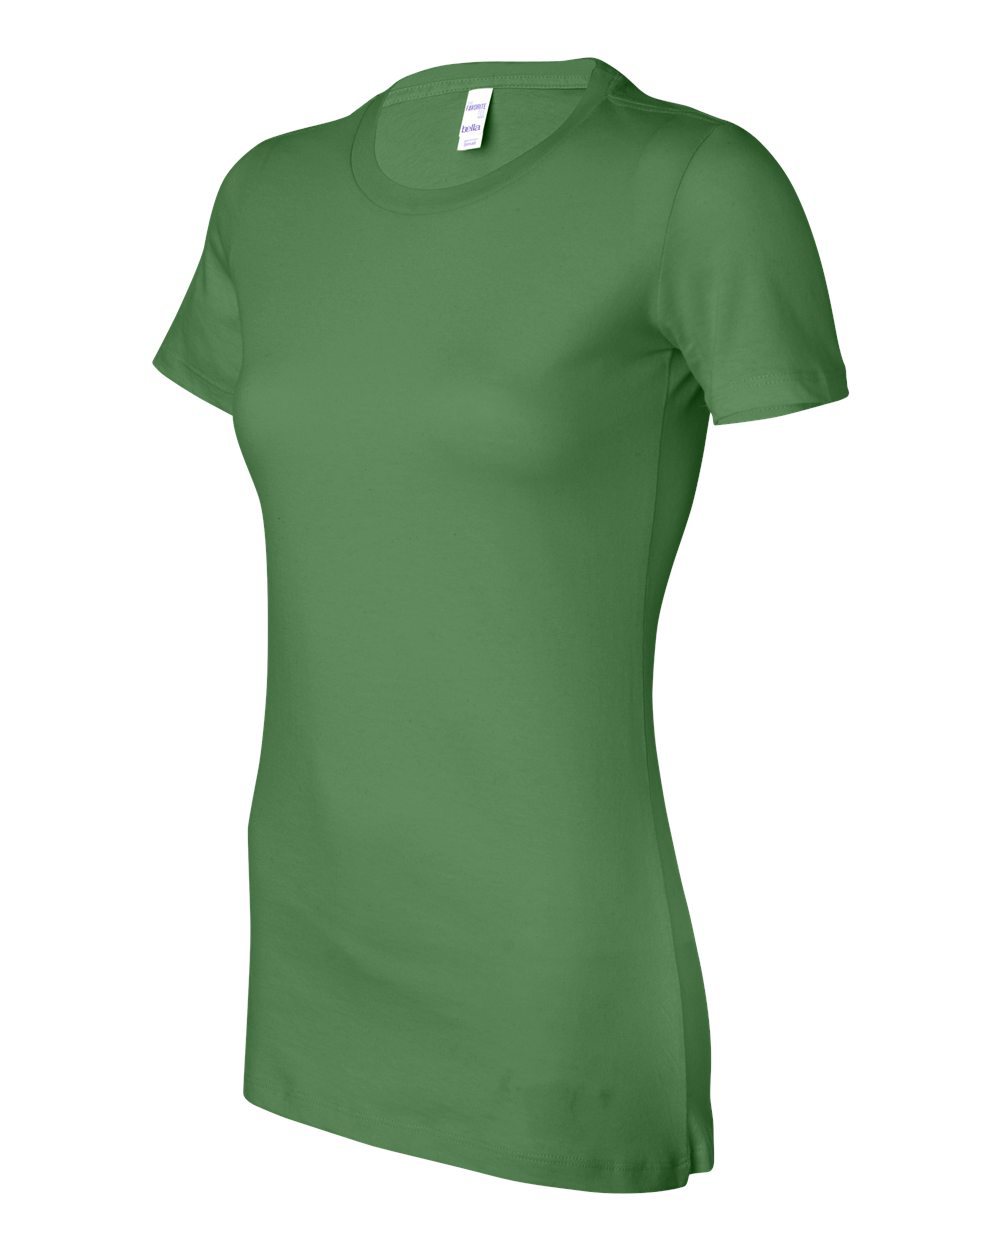 Bella-Canvas-Womens-The-Favorite-T-Shirt-6004-Size-S-2XL thumbnail 102